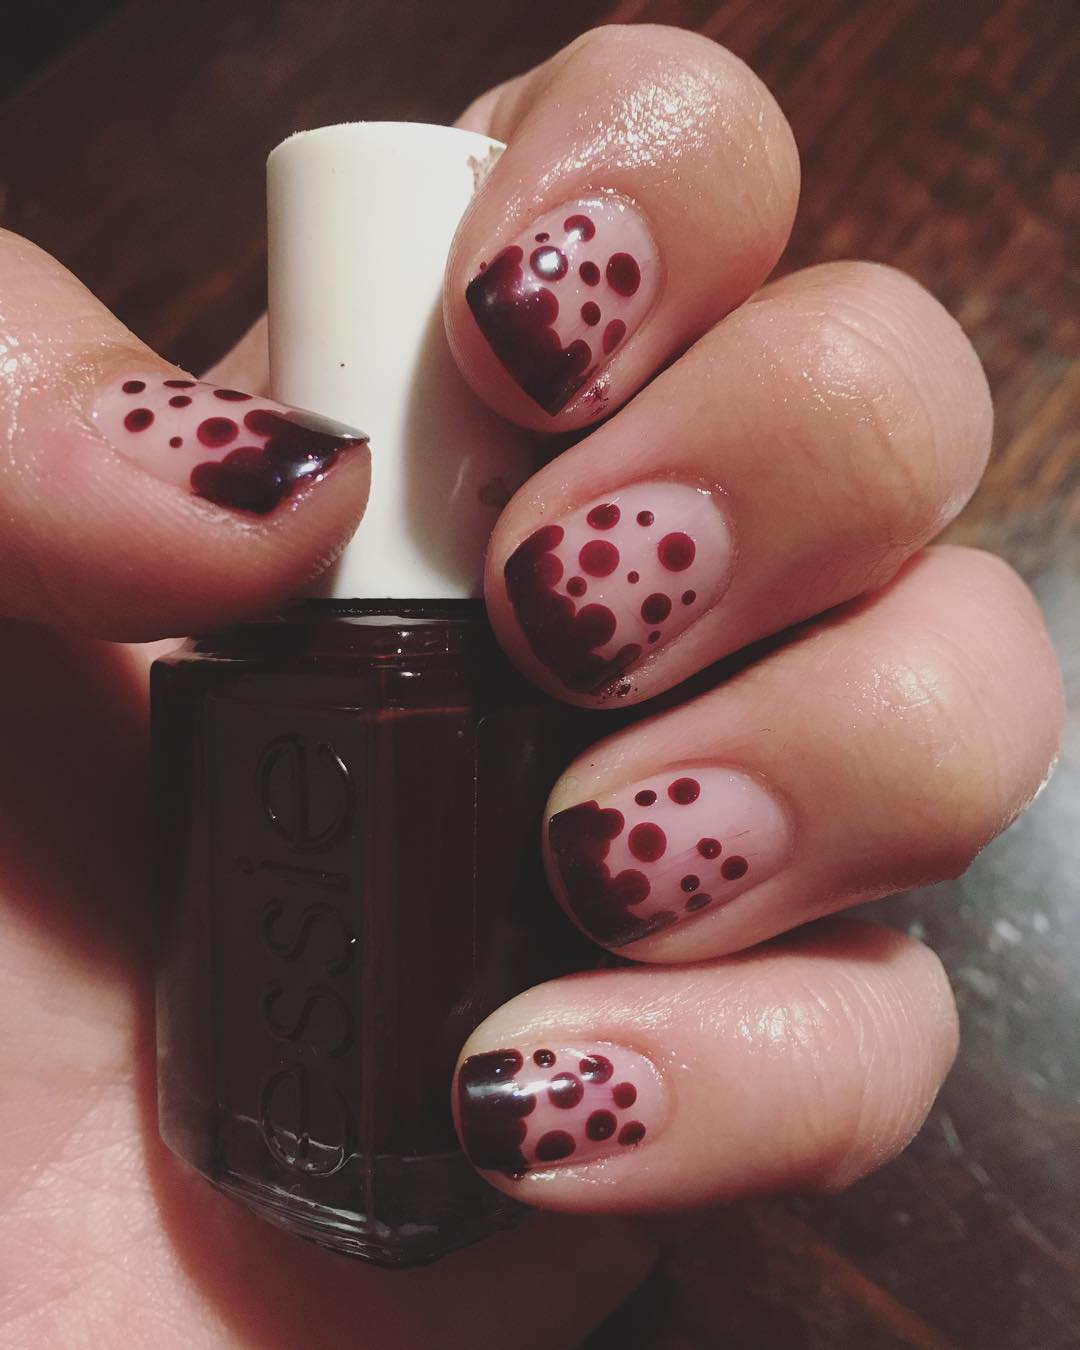 Exclusive Brown Polka Dot Nail Art Design on Transparent Nails